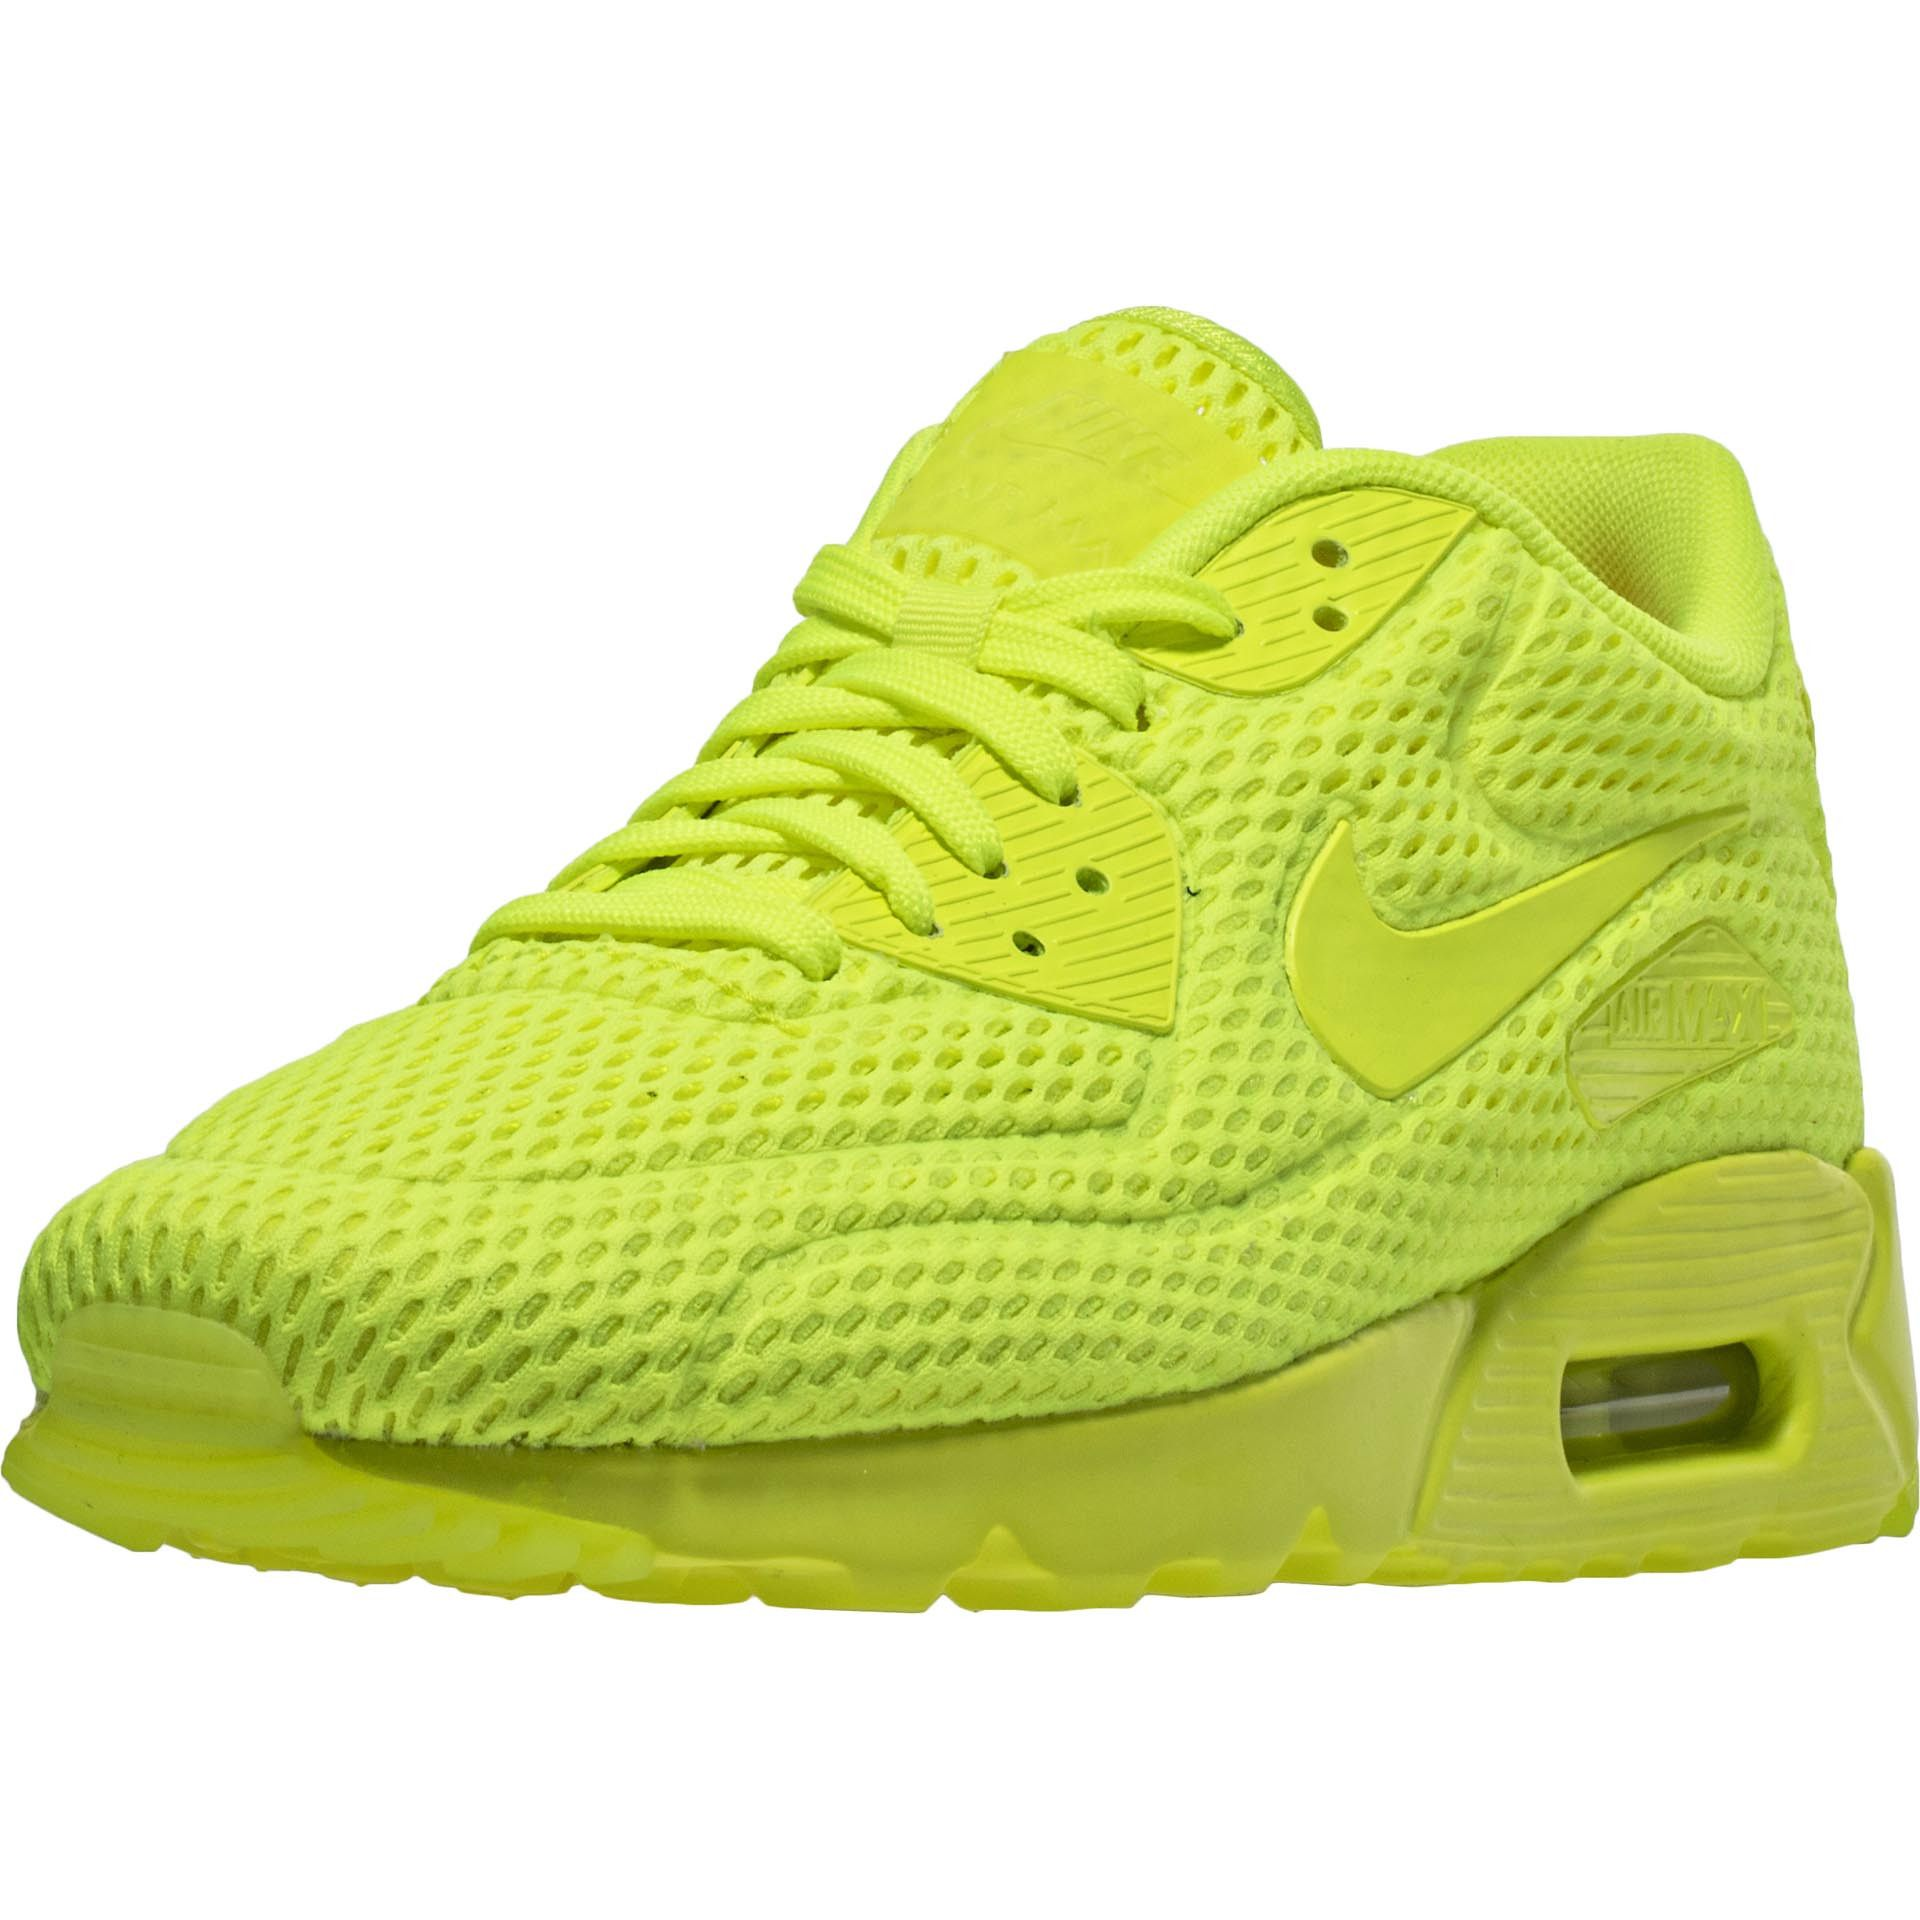 Nike Air Max 90 Ultra BR M Crazyselfit.com Keep Moving~Be Yourself Price